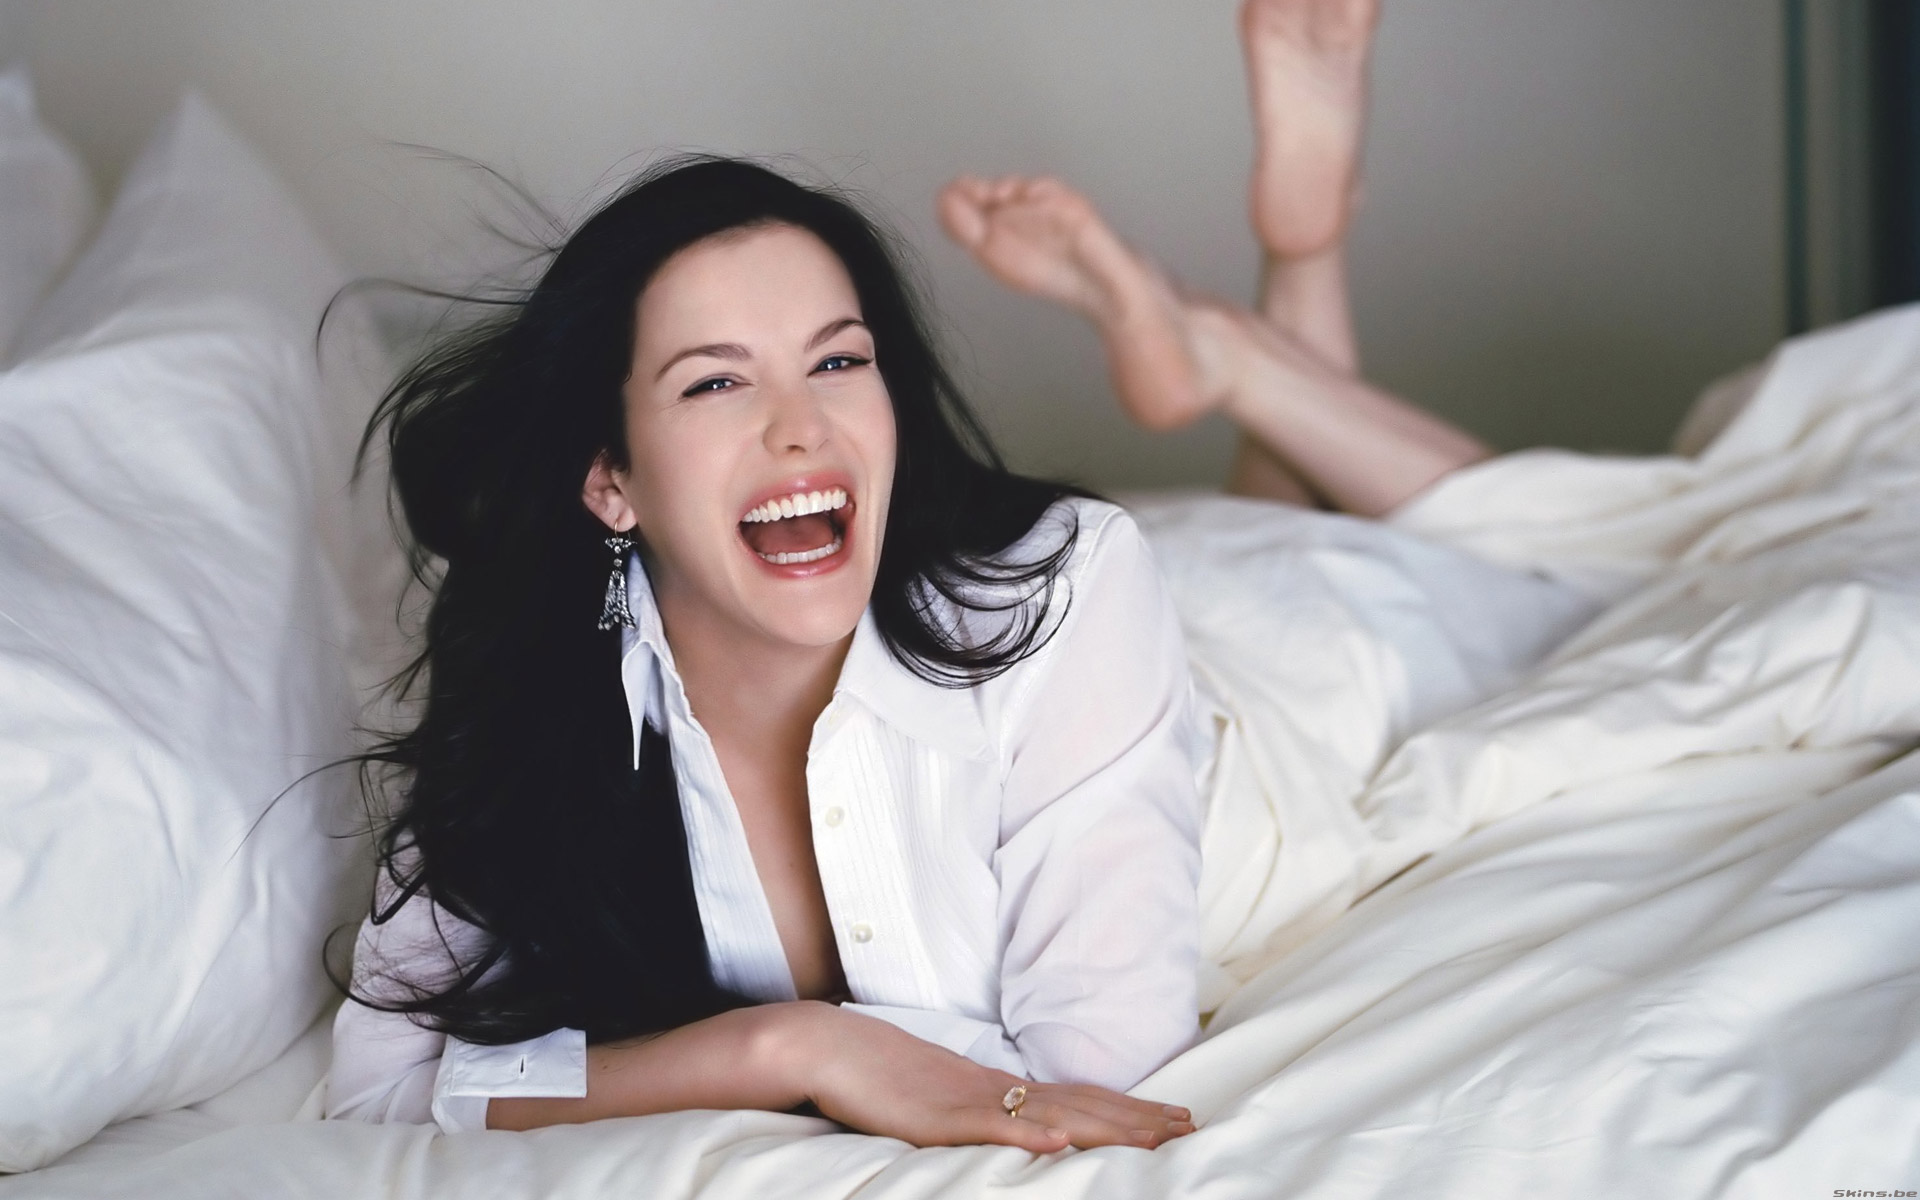 cute Liv Tyler Hot And Sexy Wallpapers - All HD Wallpapers